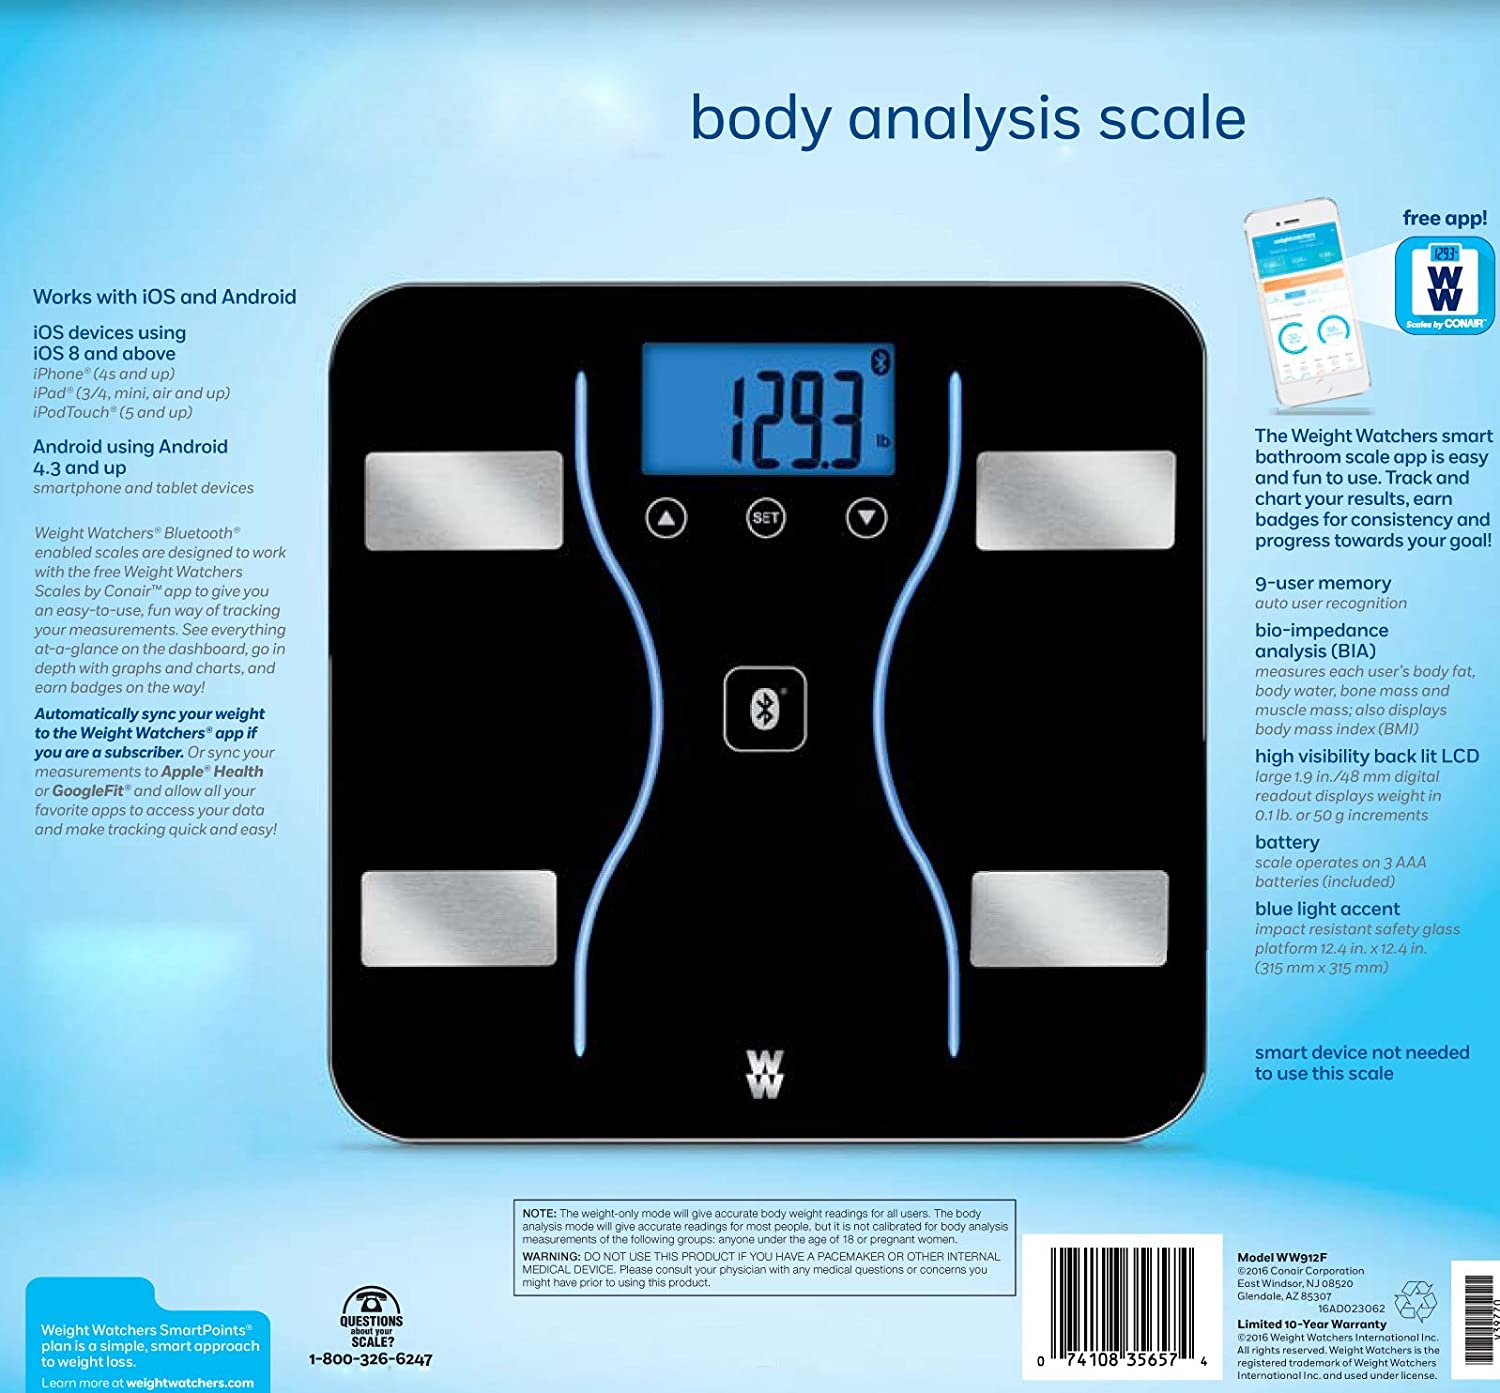 Amazon weight watchers by conair bluetooth body analysis amazon weight watchers by conair bluetooth body analysis scale home kitchen nvjuhfo Images